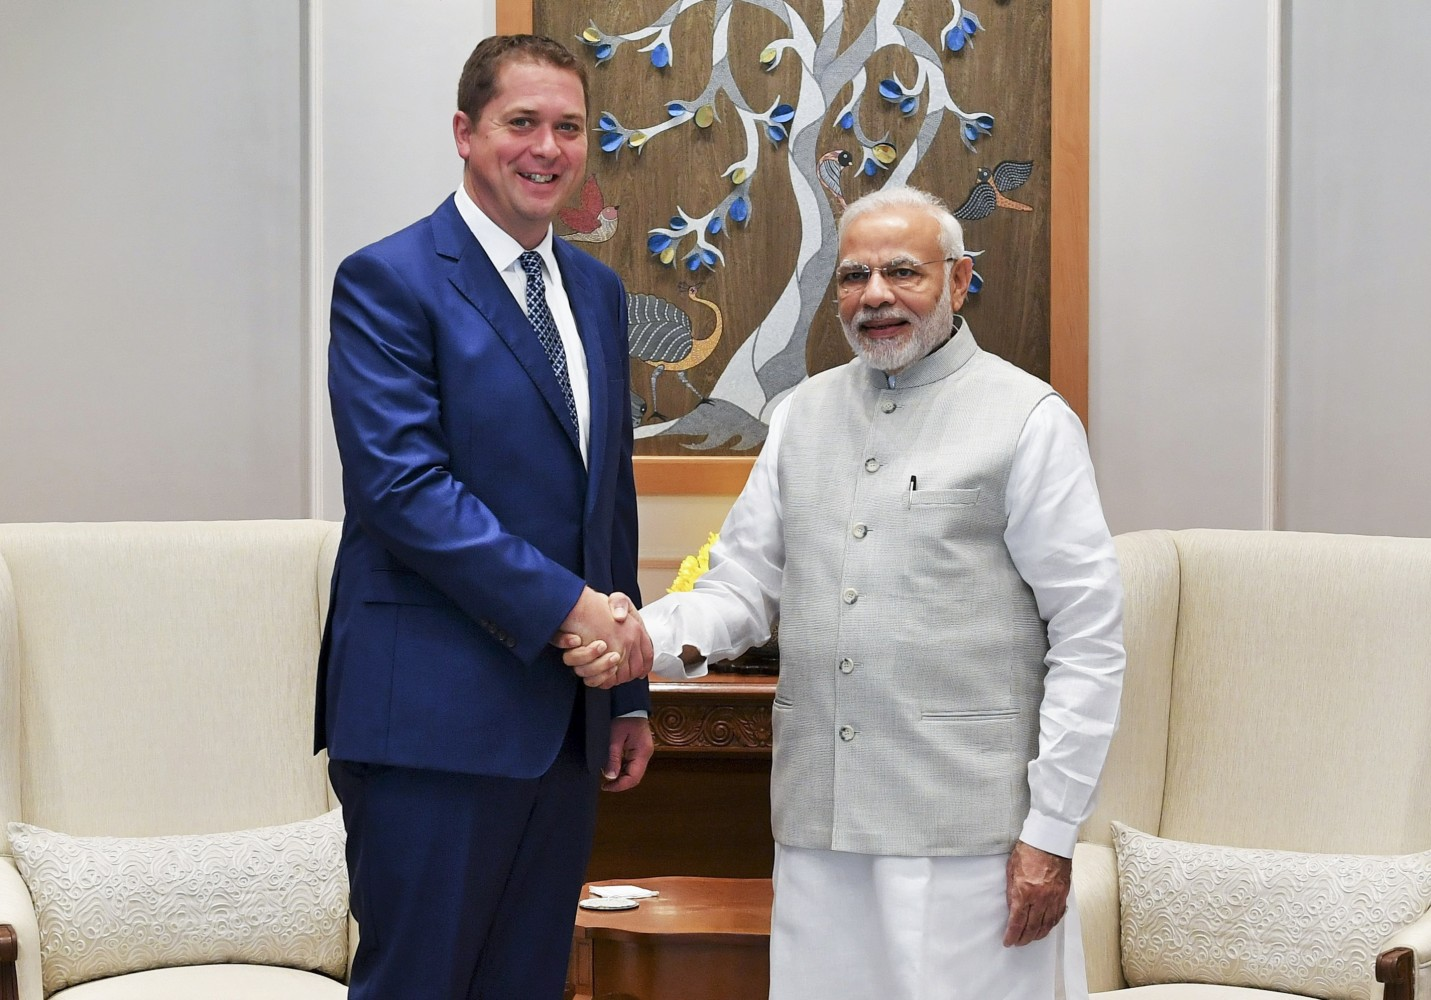 As India begins deporting Rohingya refugees Andrew Scheer and Brampton candidate skirt issue of country's appalling human rights record during visit